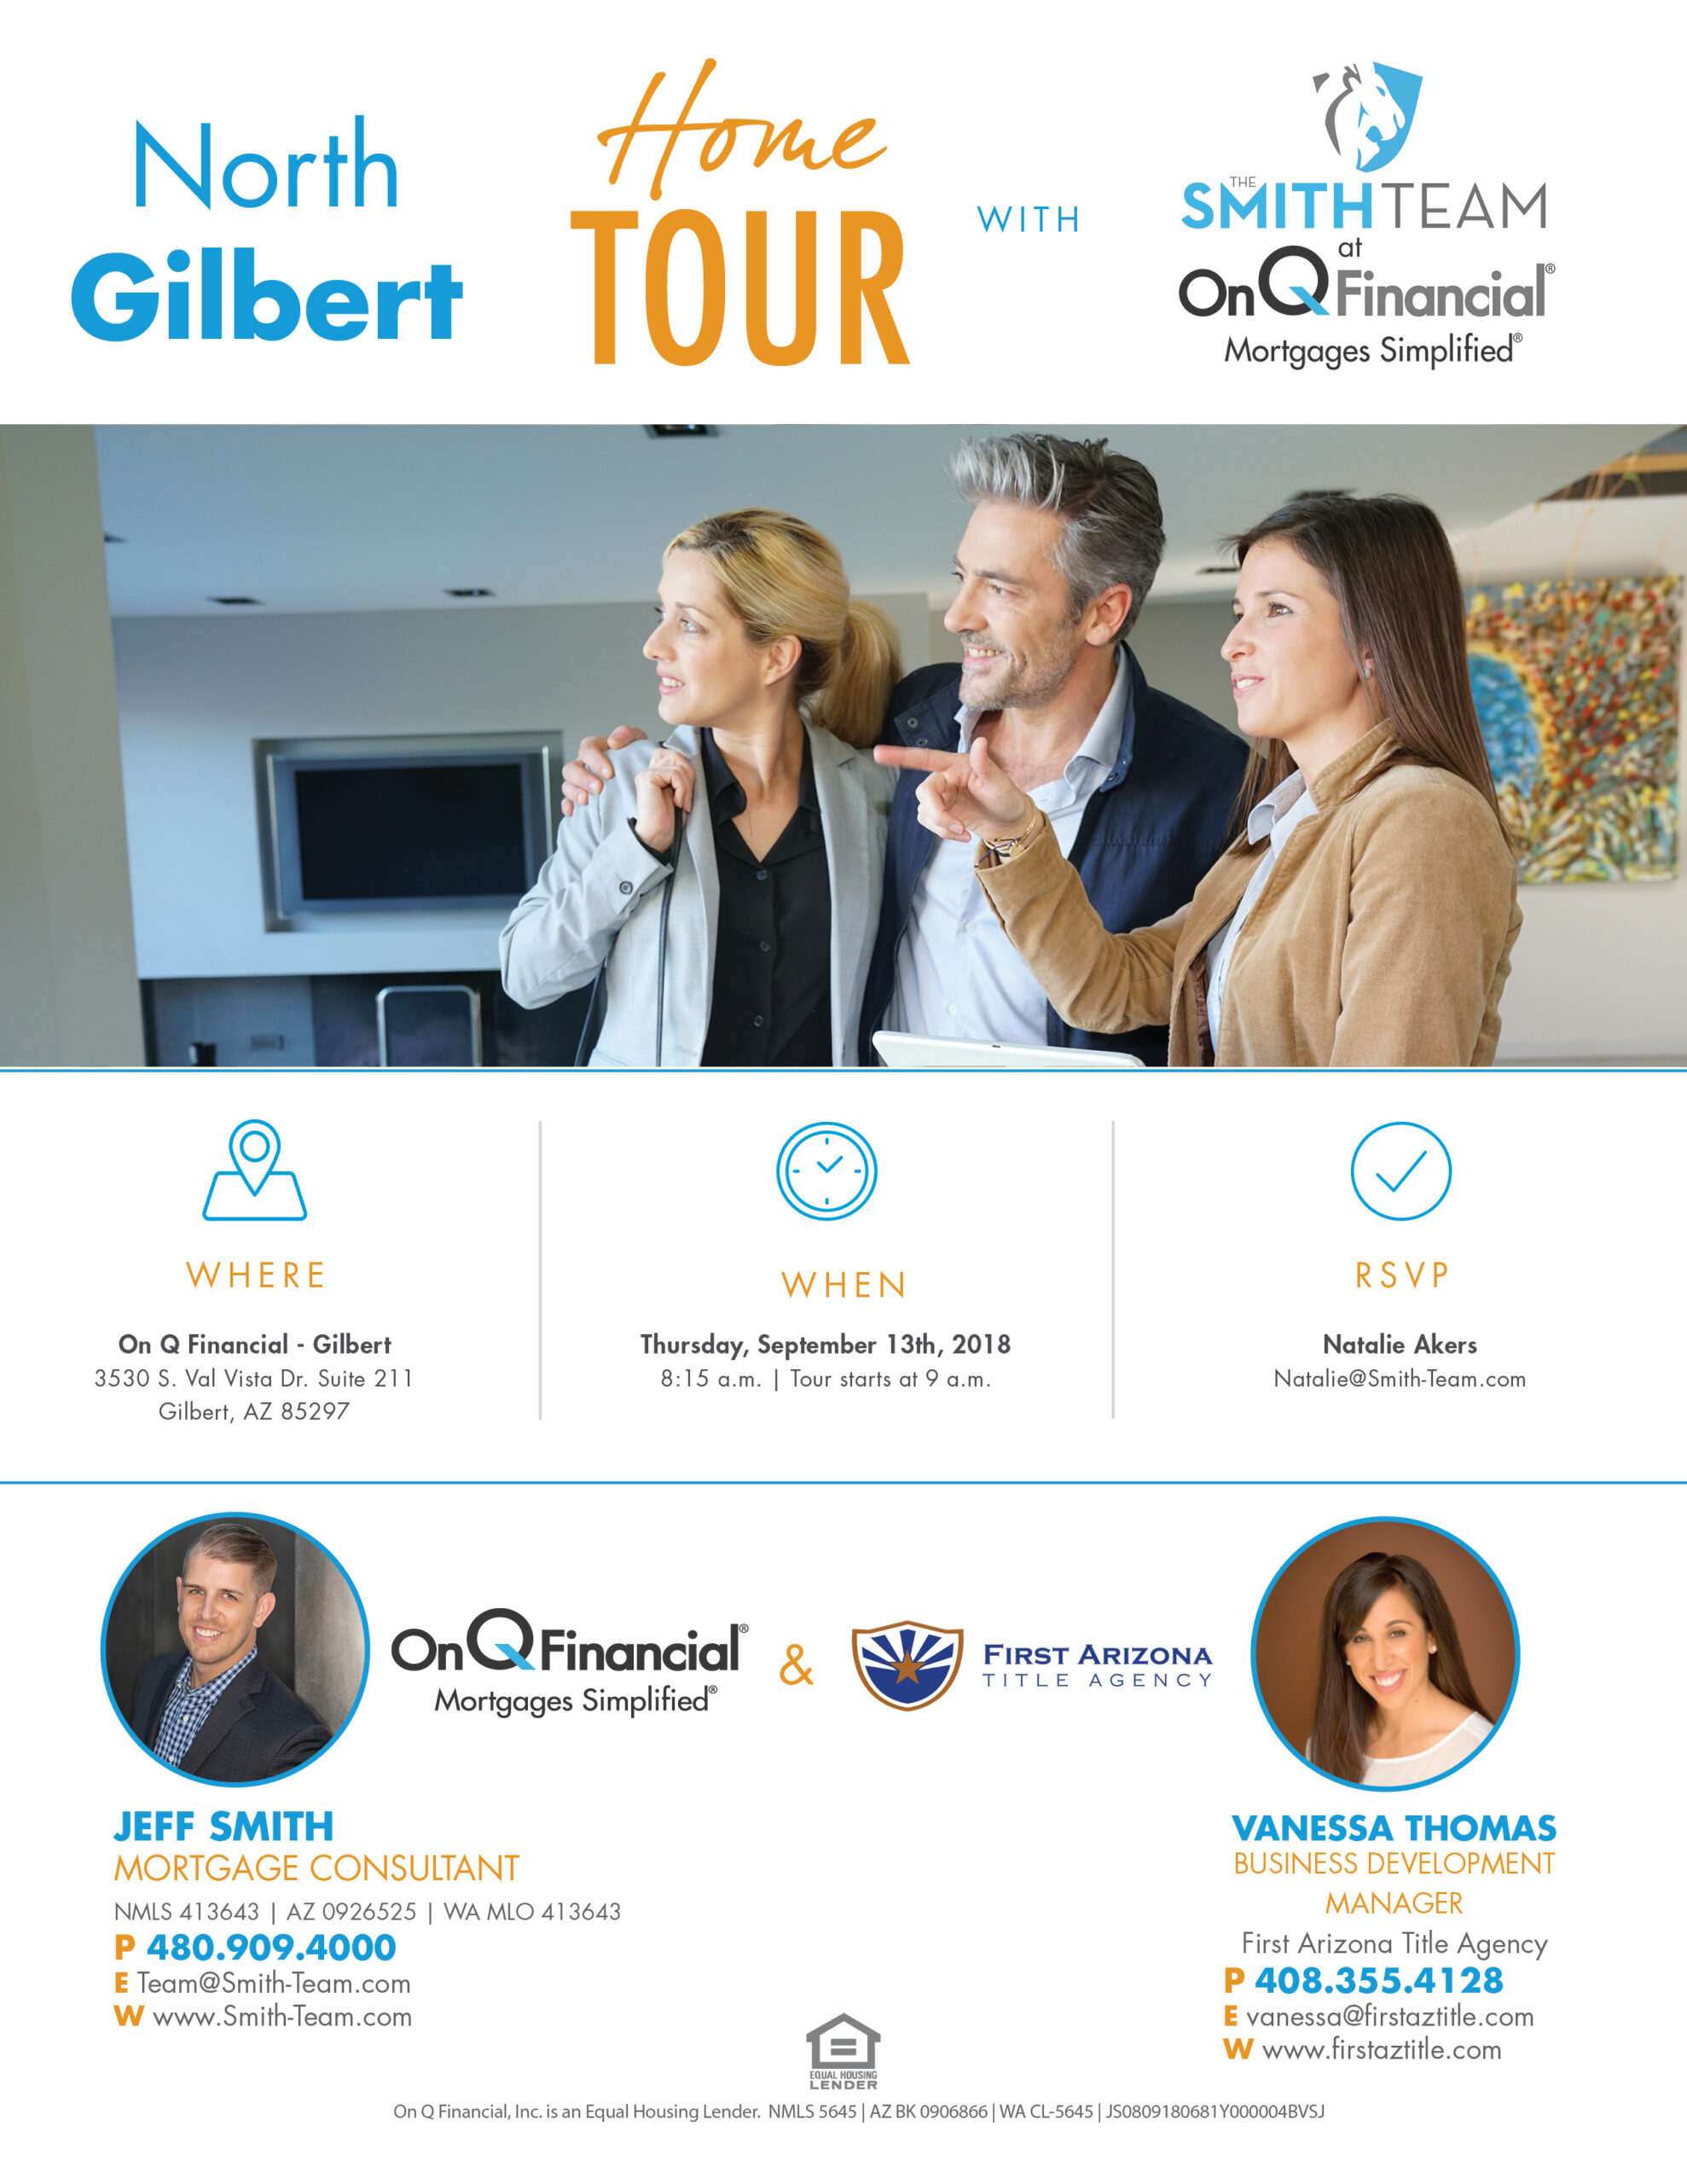 North Gilbert Home Tour First Arizona Title Agency